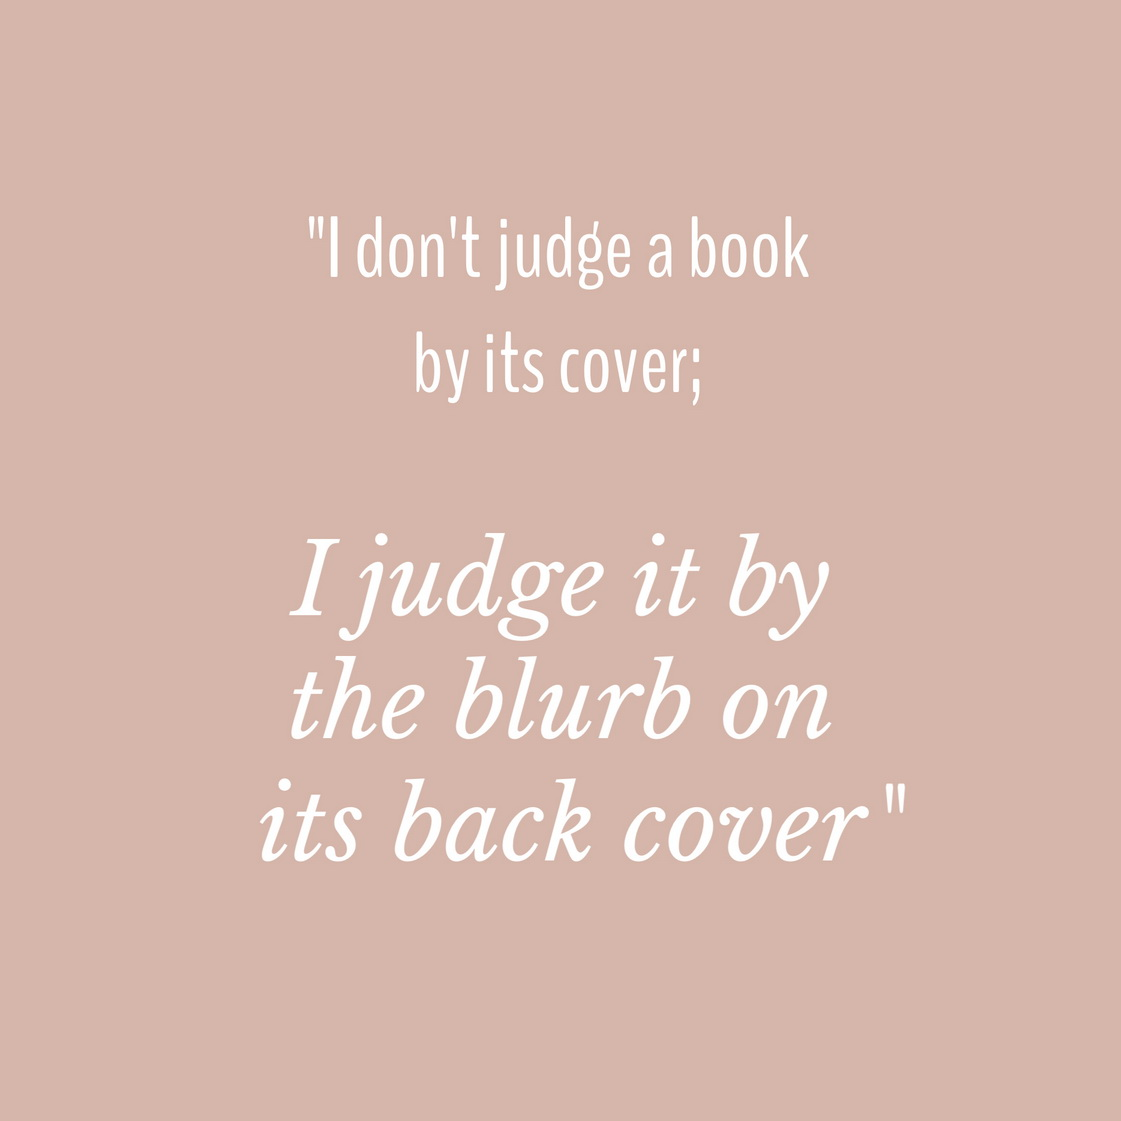 You can't judge a book by its cover short essay